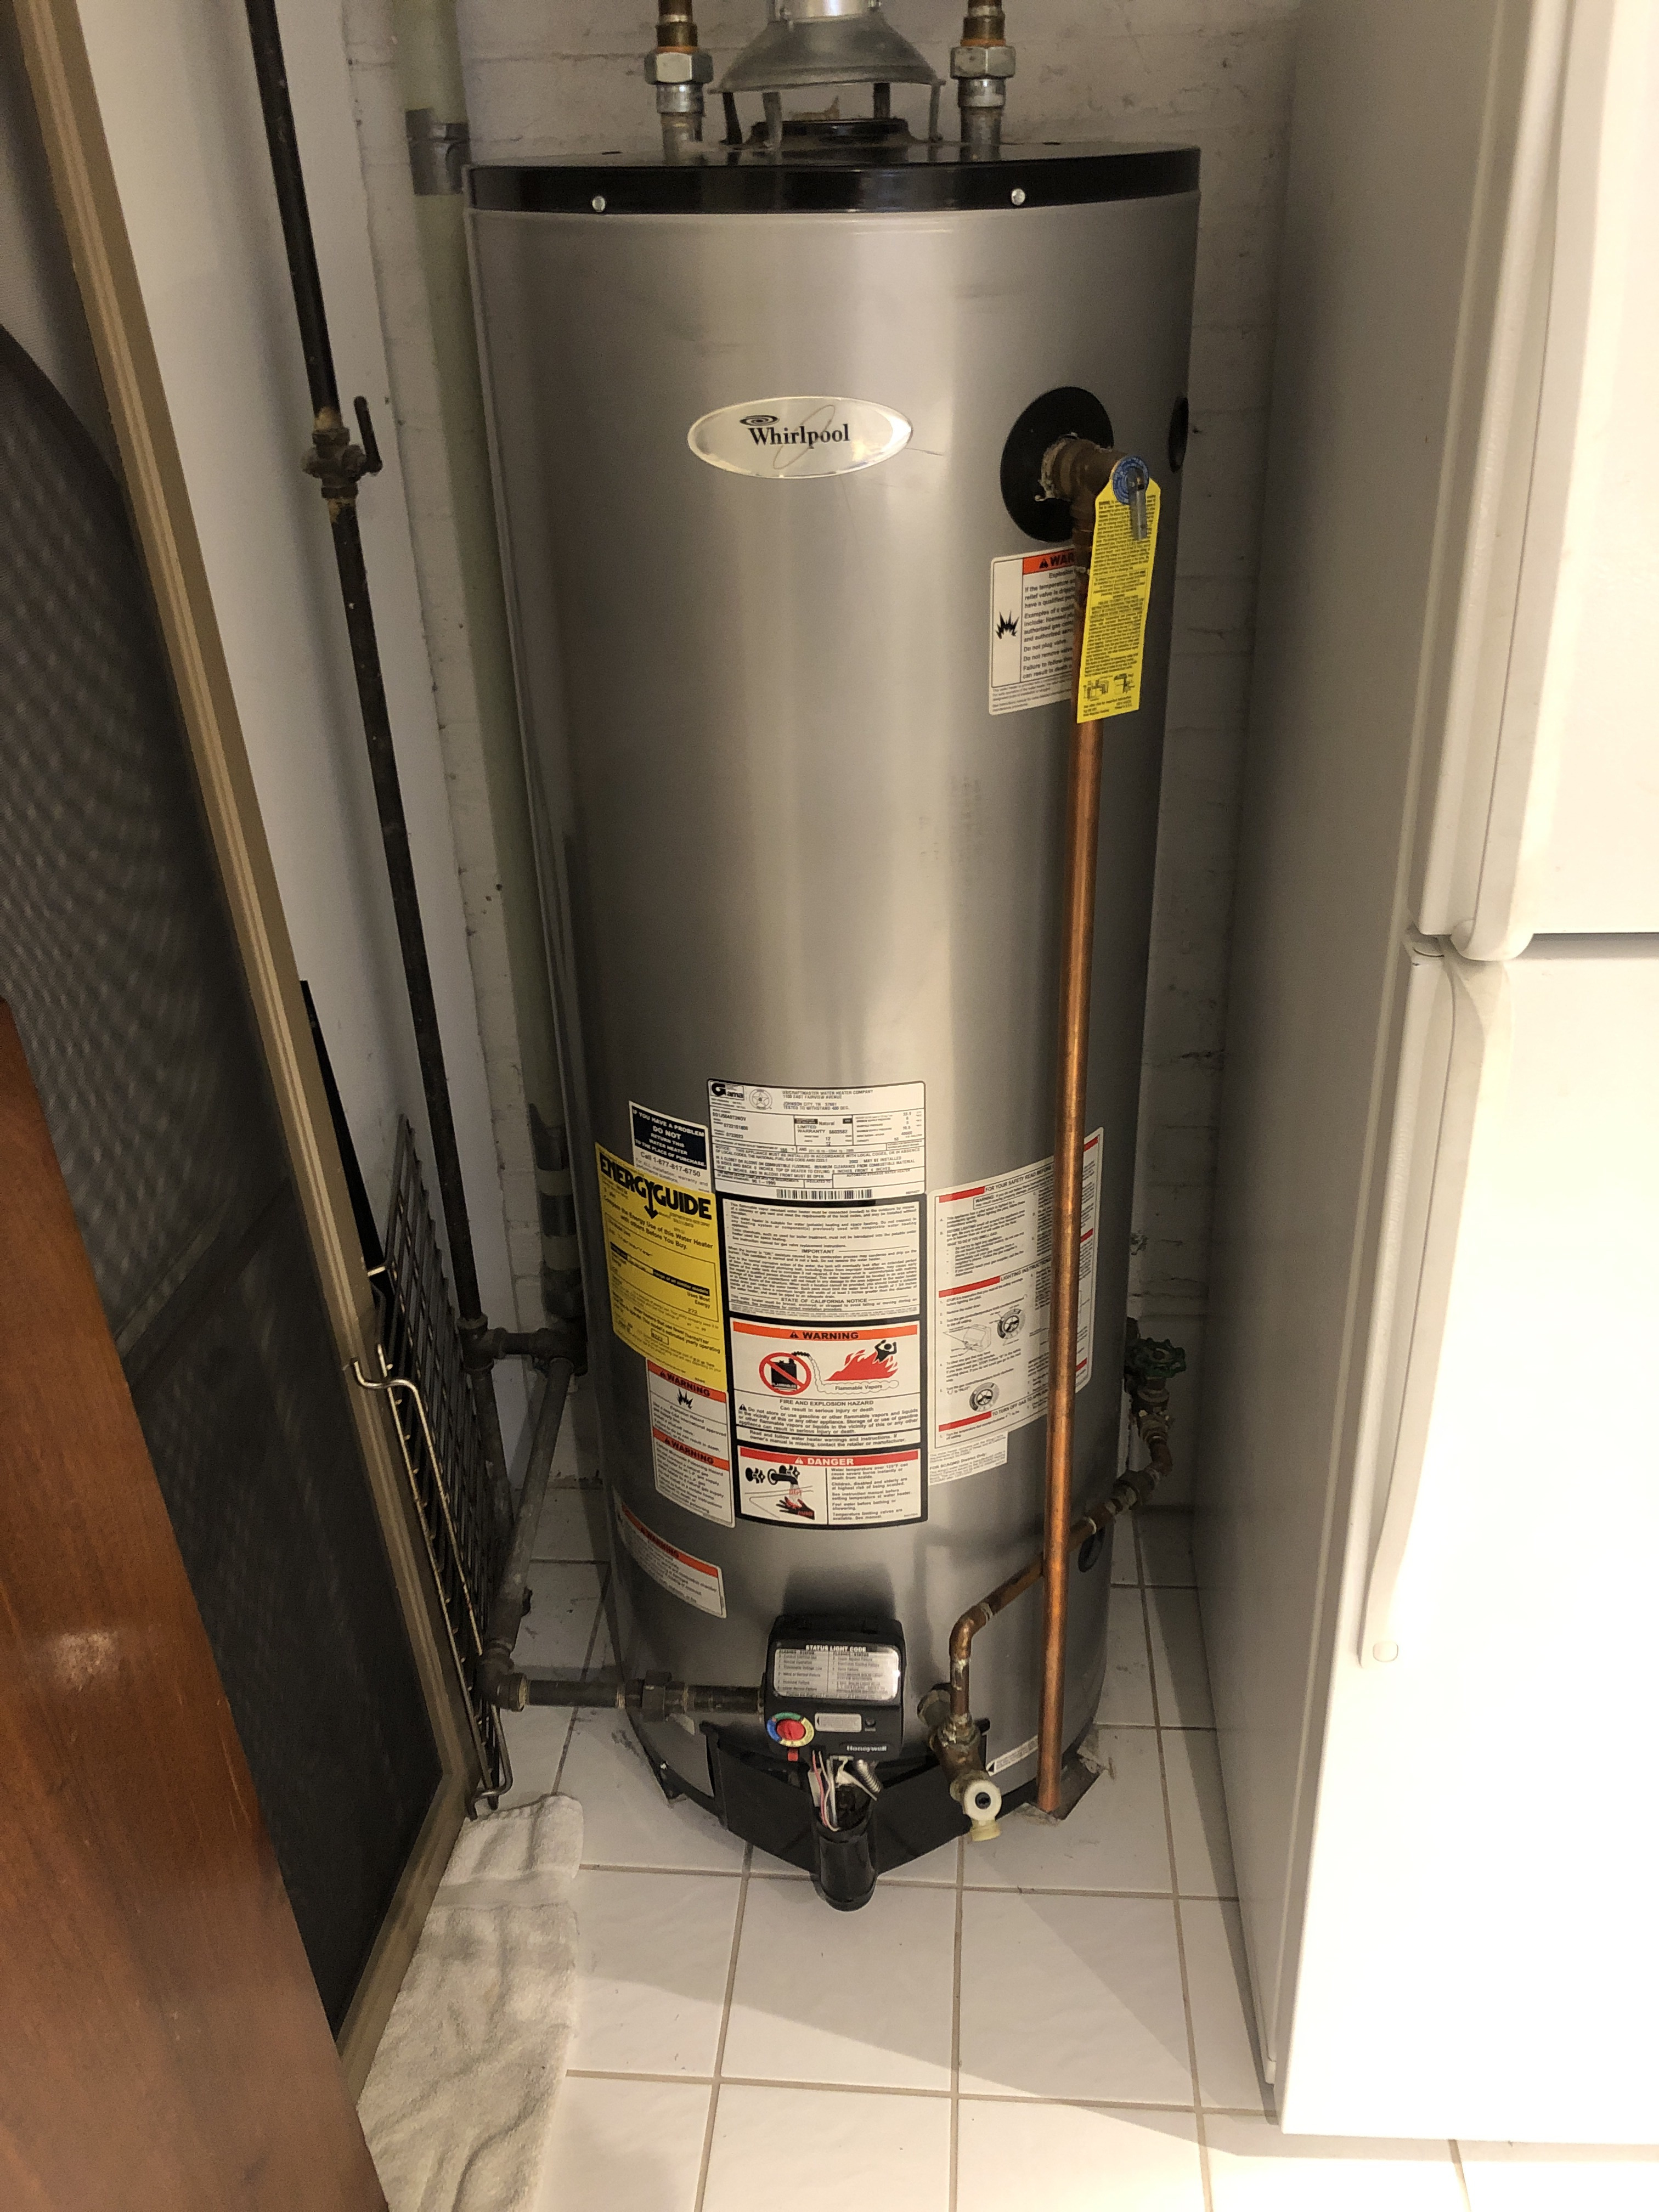 Arrived on call for ho heat. Found hot water heating flashing an upper sensor failure. Reset valve and relit pilot cycled unit. Unit fired up but recommended replacing unit soon